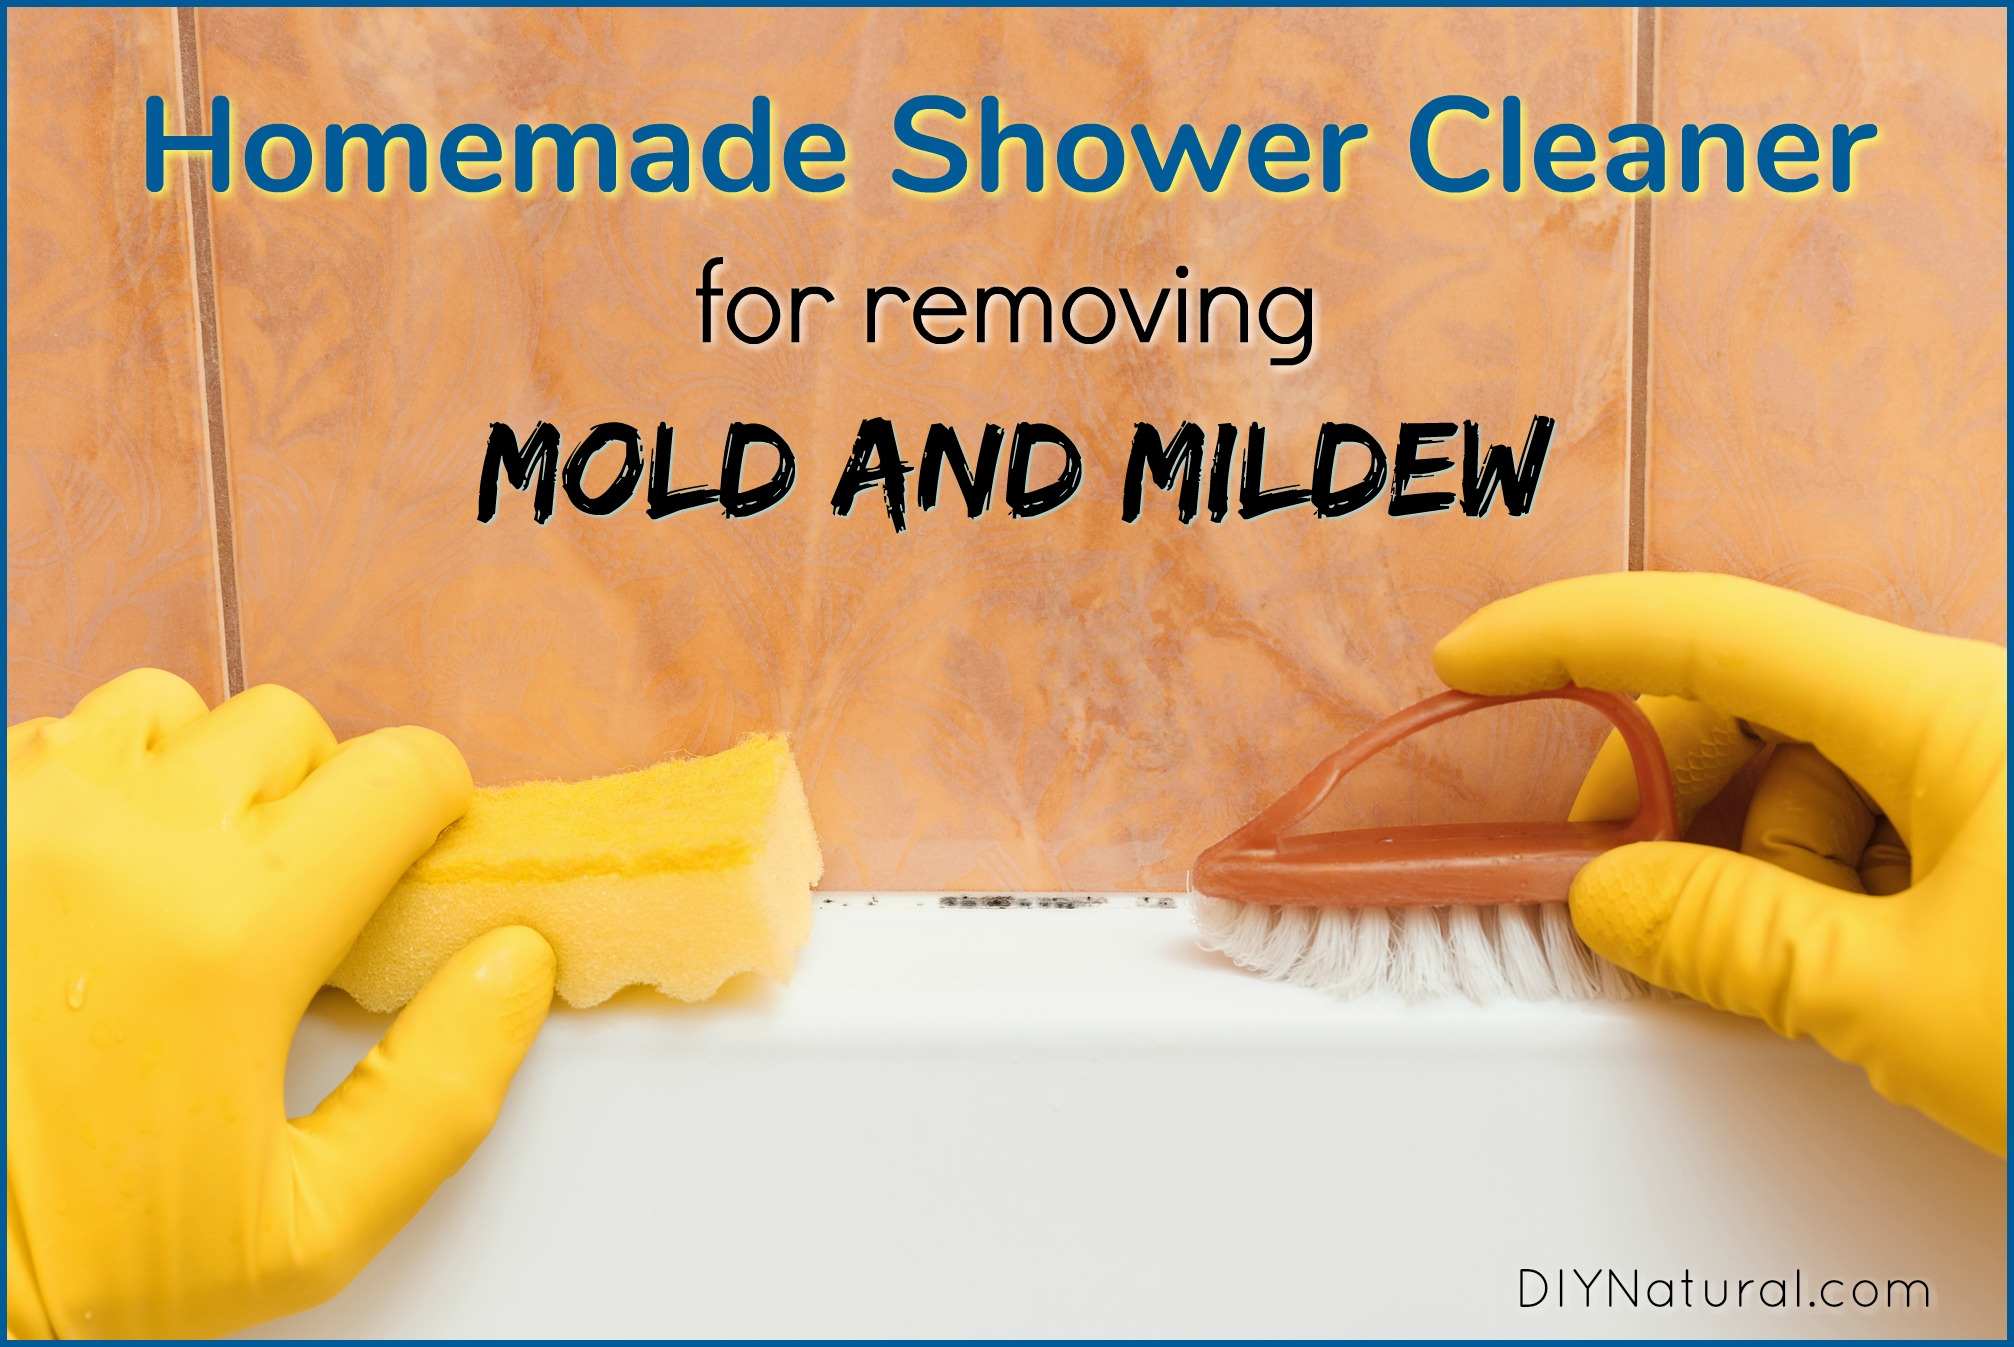 Mold in Shower: Homemade Shower Cleaner